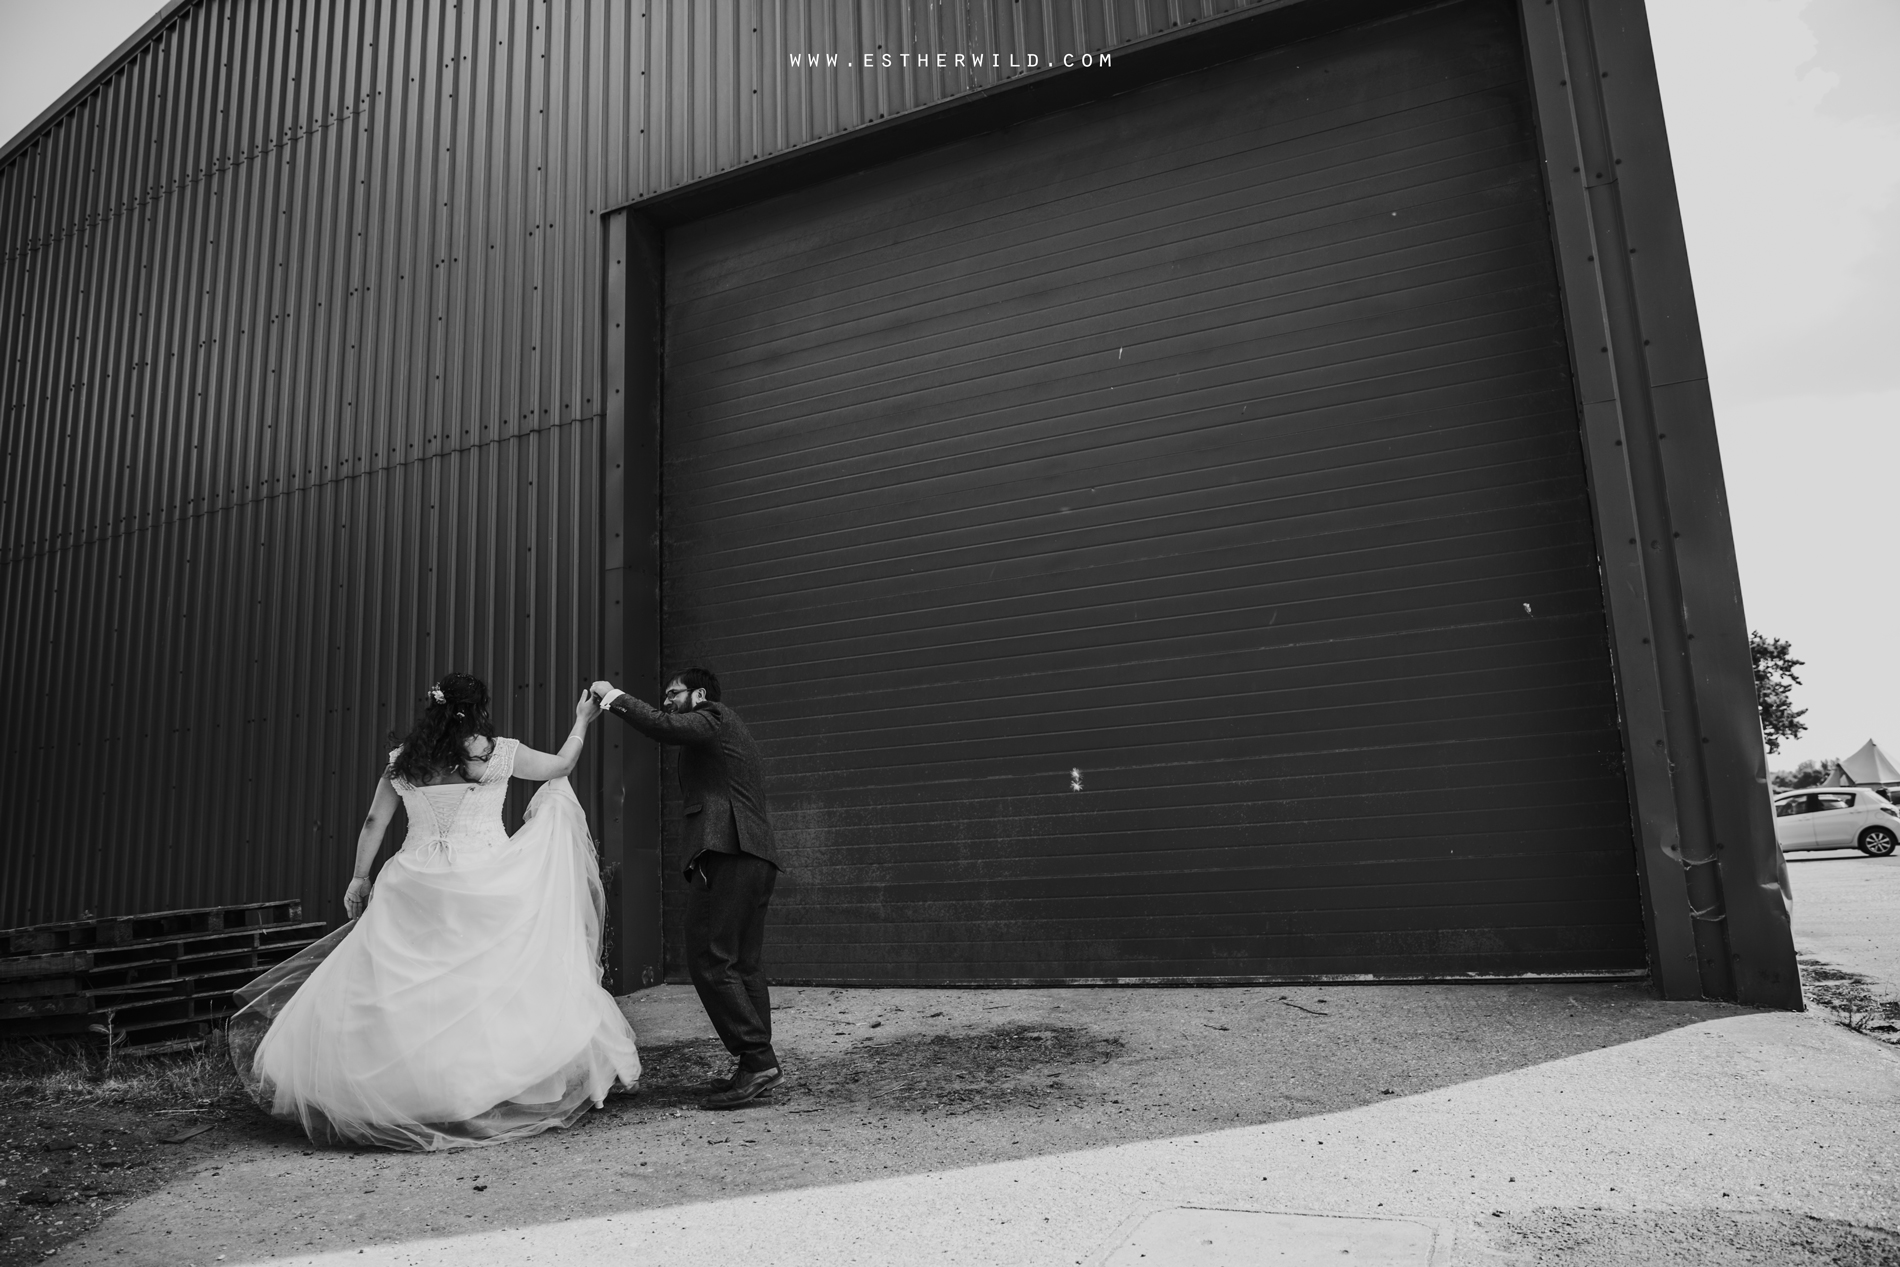 The_Red_Barn_Wedding_Kings_Lynn_Norfolk_IMG_1586-2.jpg